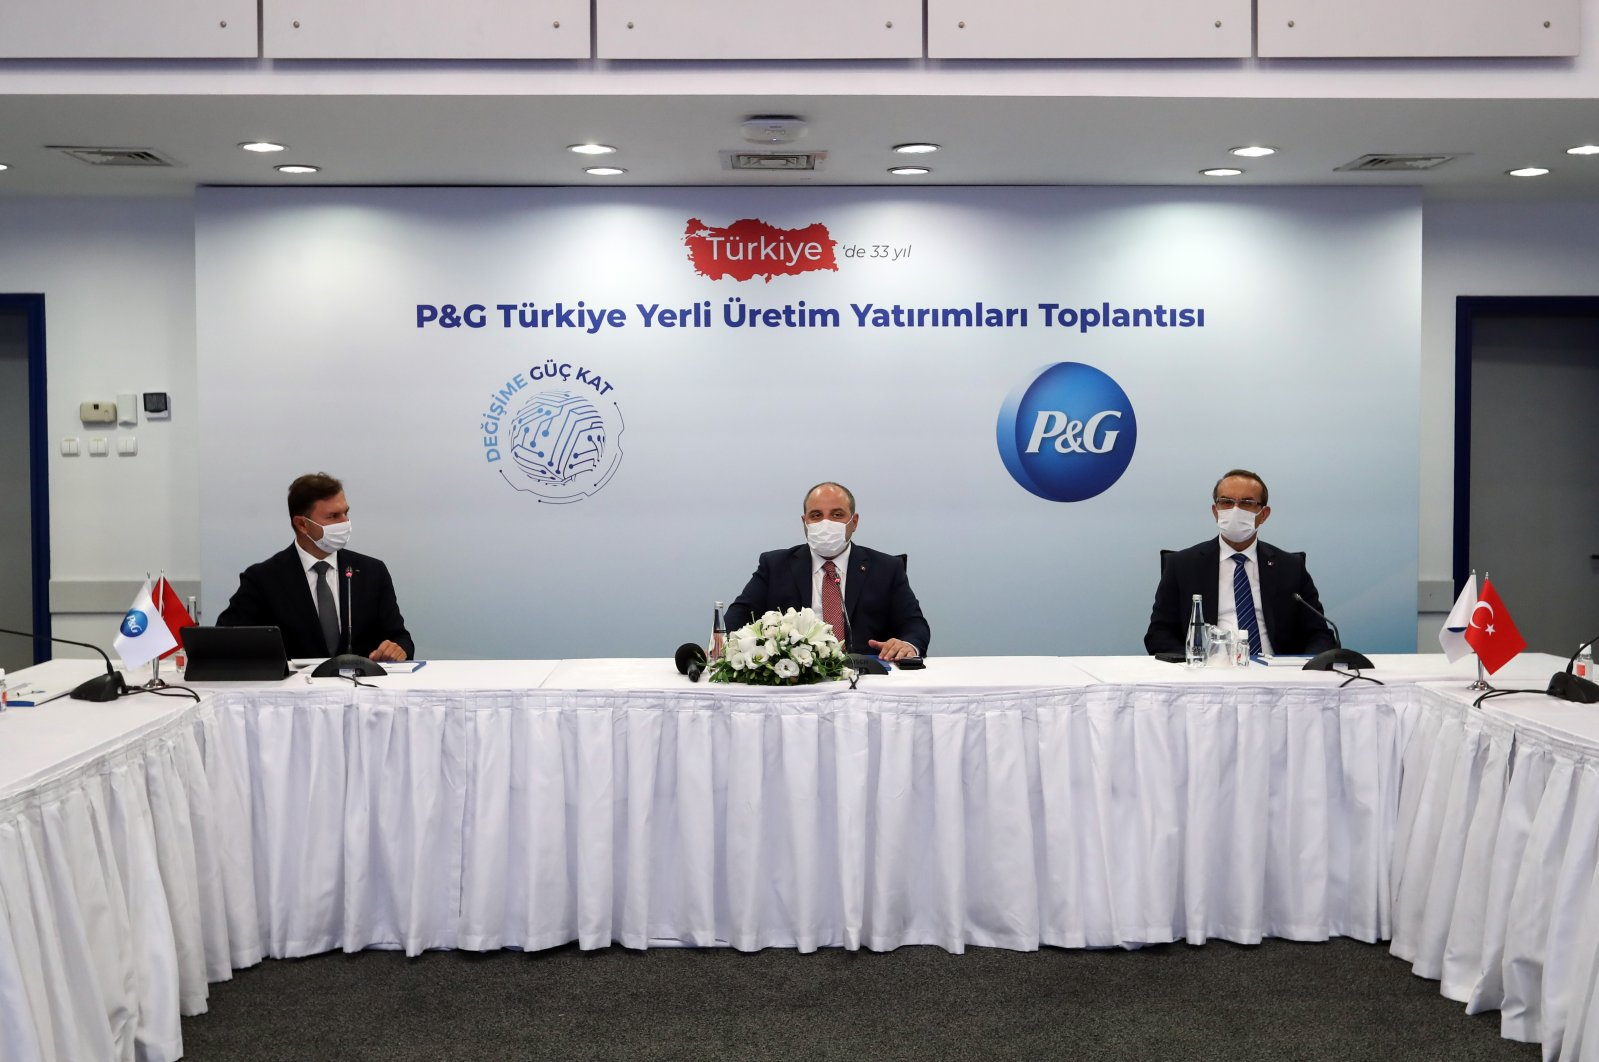 Industry and Technology Minister Mustafa Varank (C) during a meeting at P&G's plant in Turkey's northwestern Kocaeli province, Sept. 11, 2020. (AA Photo)